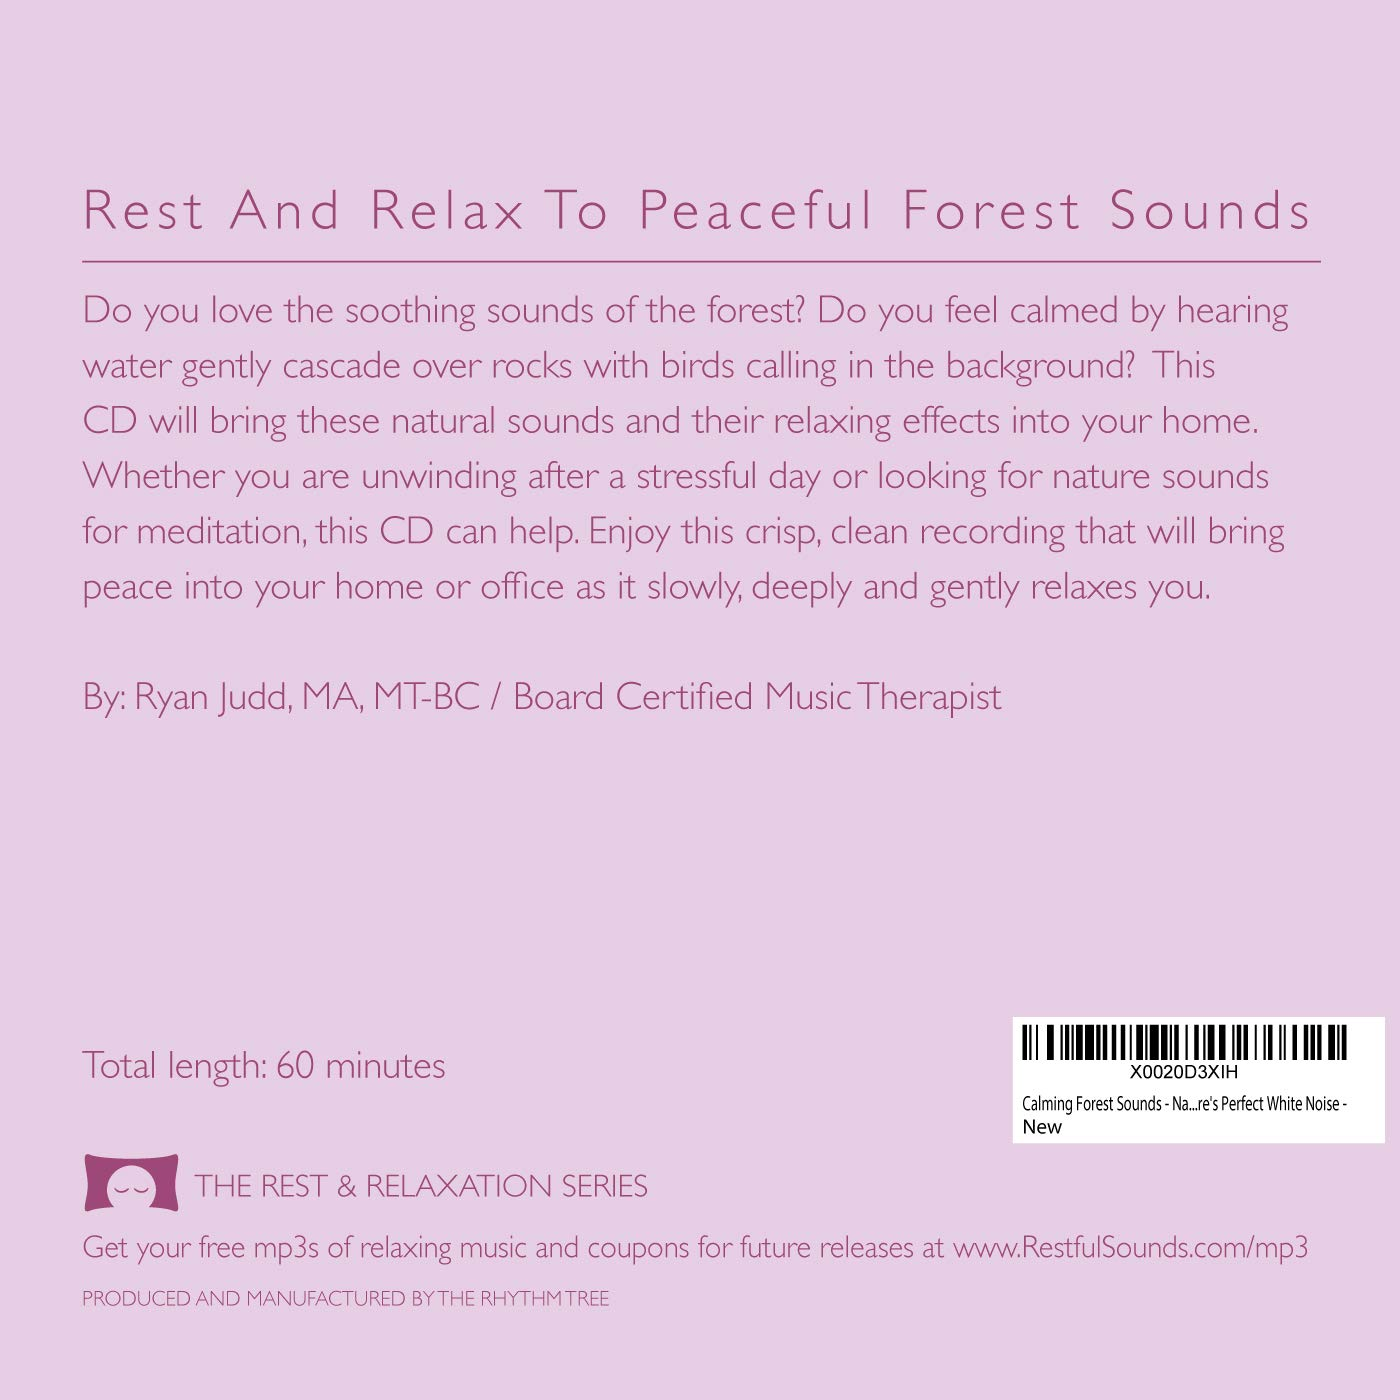 Calming Forest Sounds - Nature Sounds Recording - For Meditation,  Relaxation and Creating a Soothing Atmosphere - Nature's Perfect White  Noise - CD,